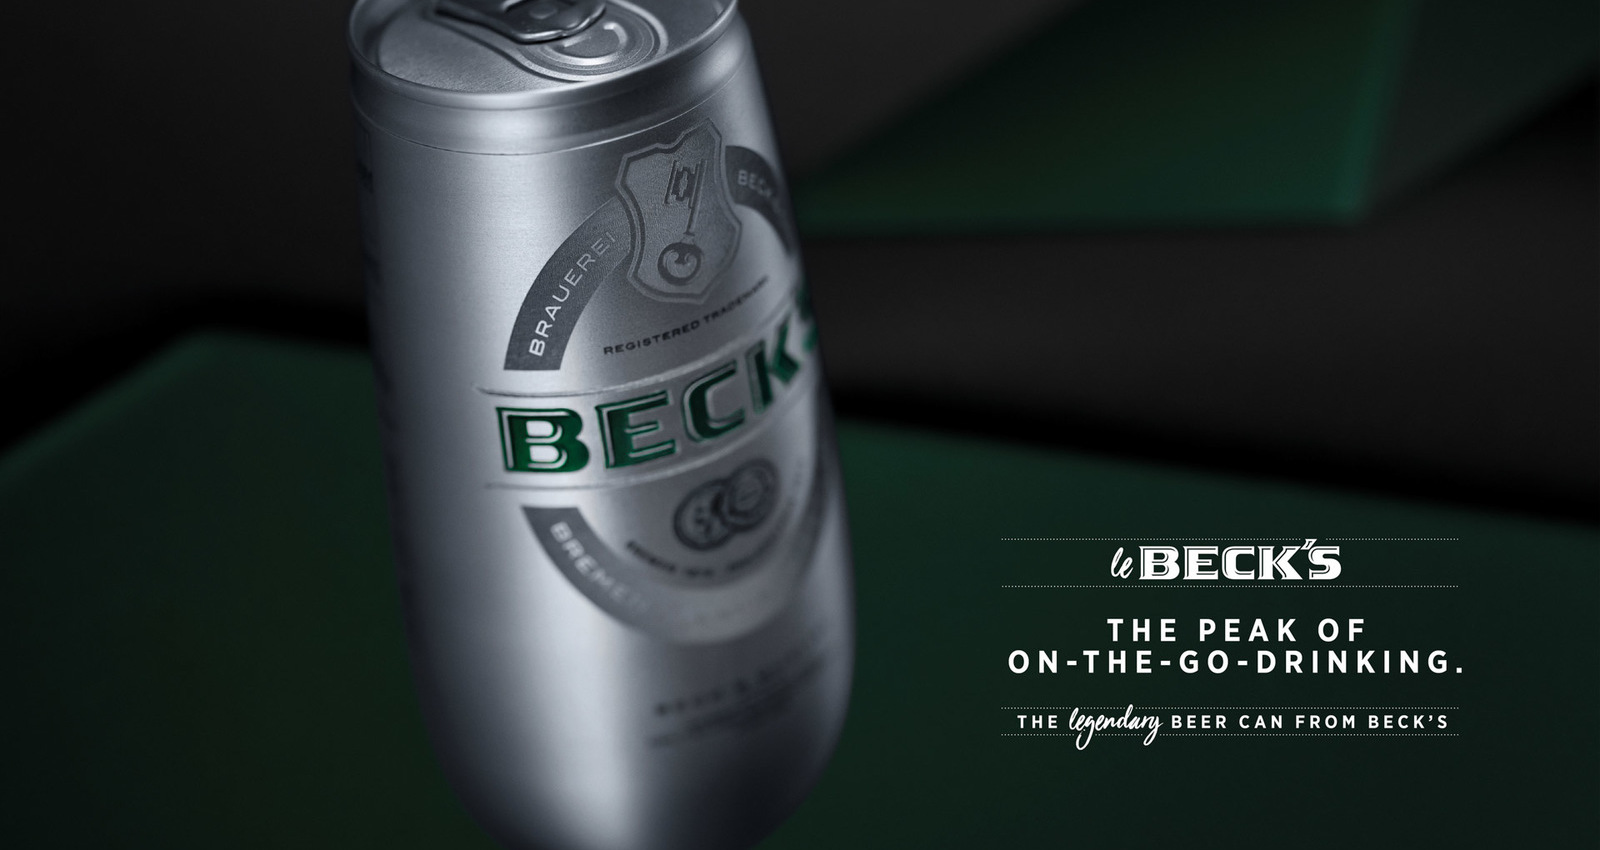 Le Beck's: The legendary beer can